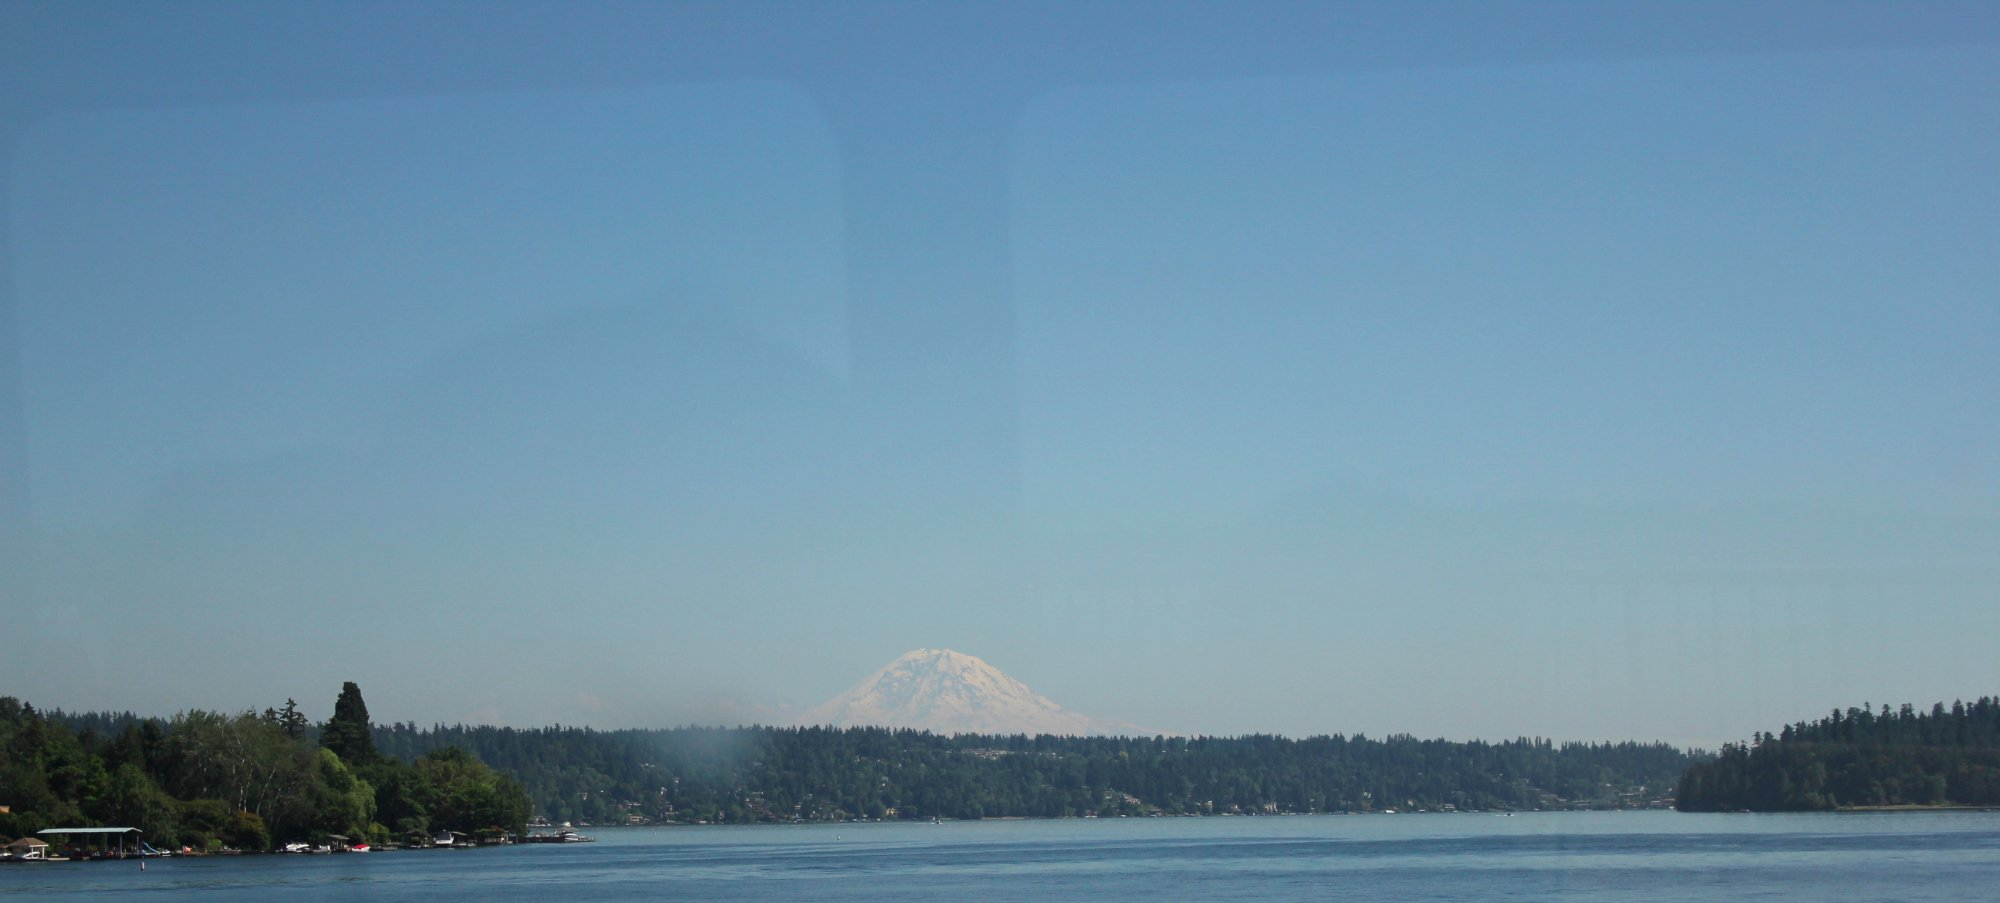 The lovely Mt. Ranier